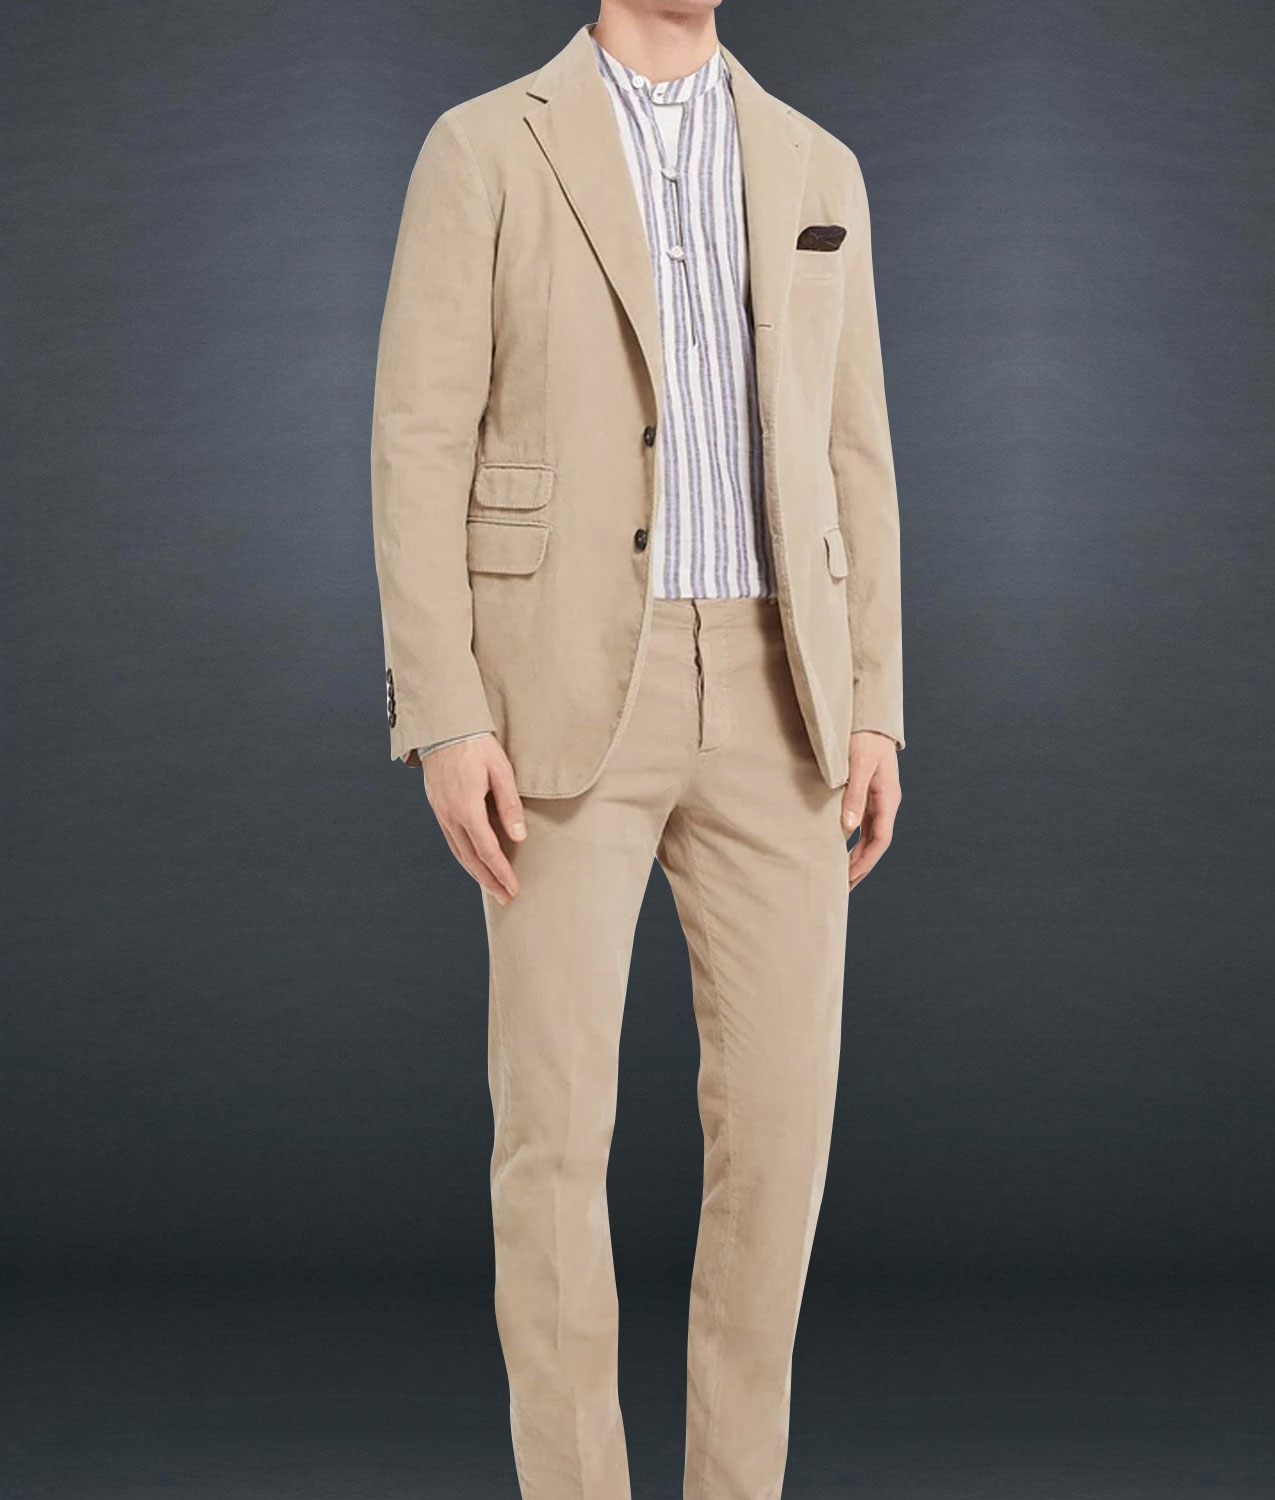 James Bond No Time to Die Matera Brown Suit